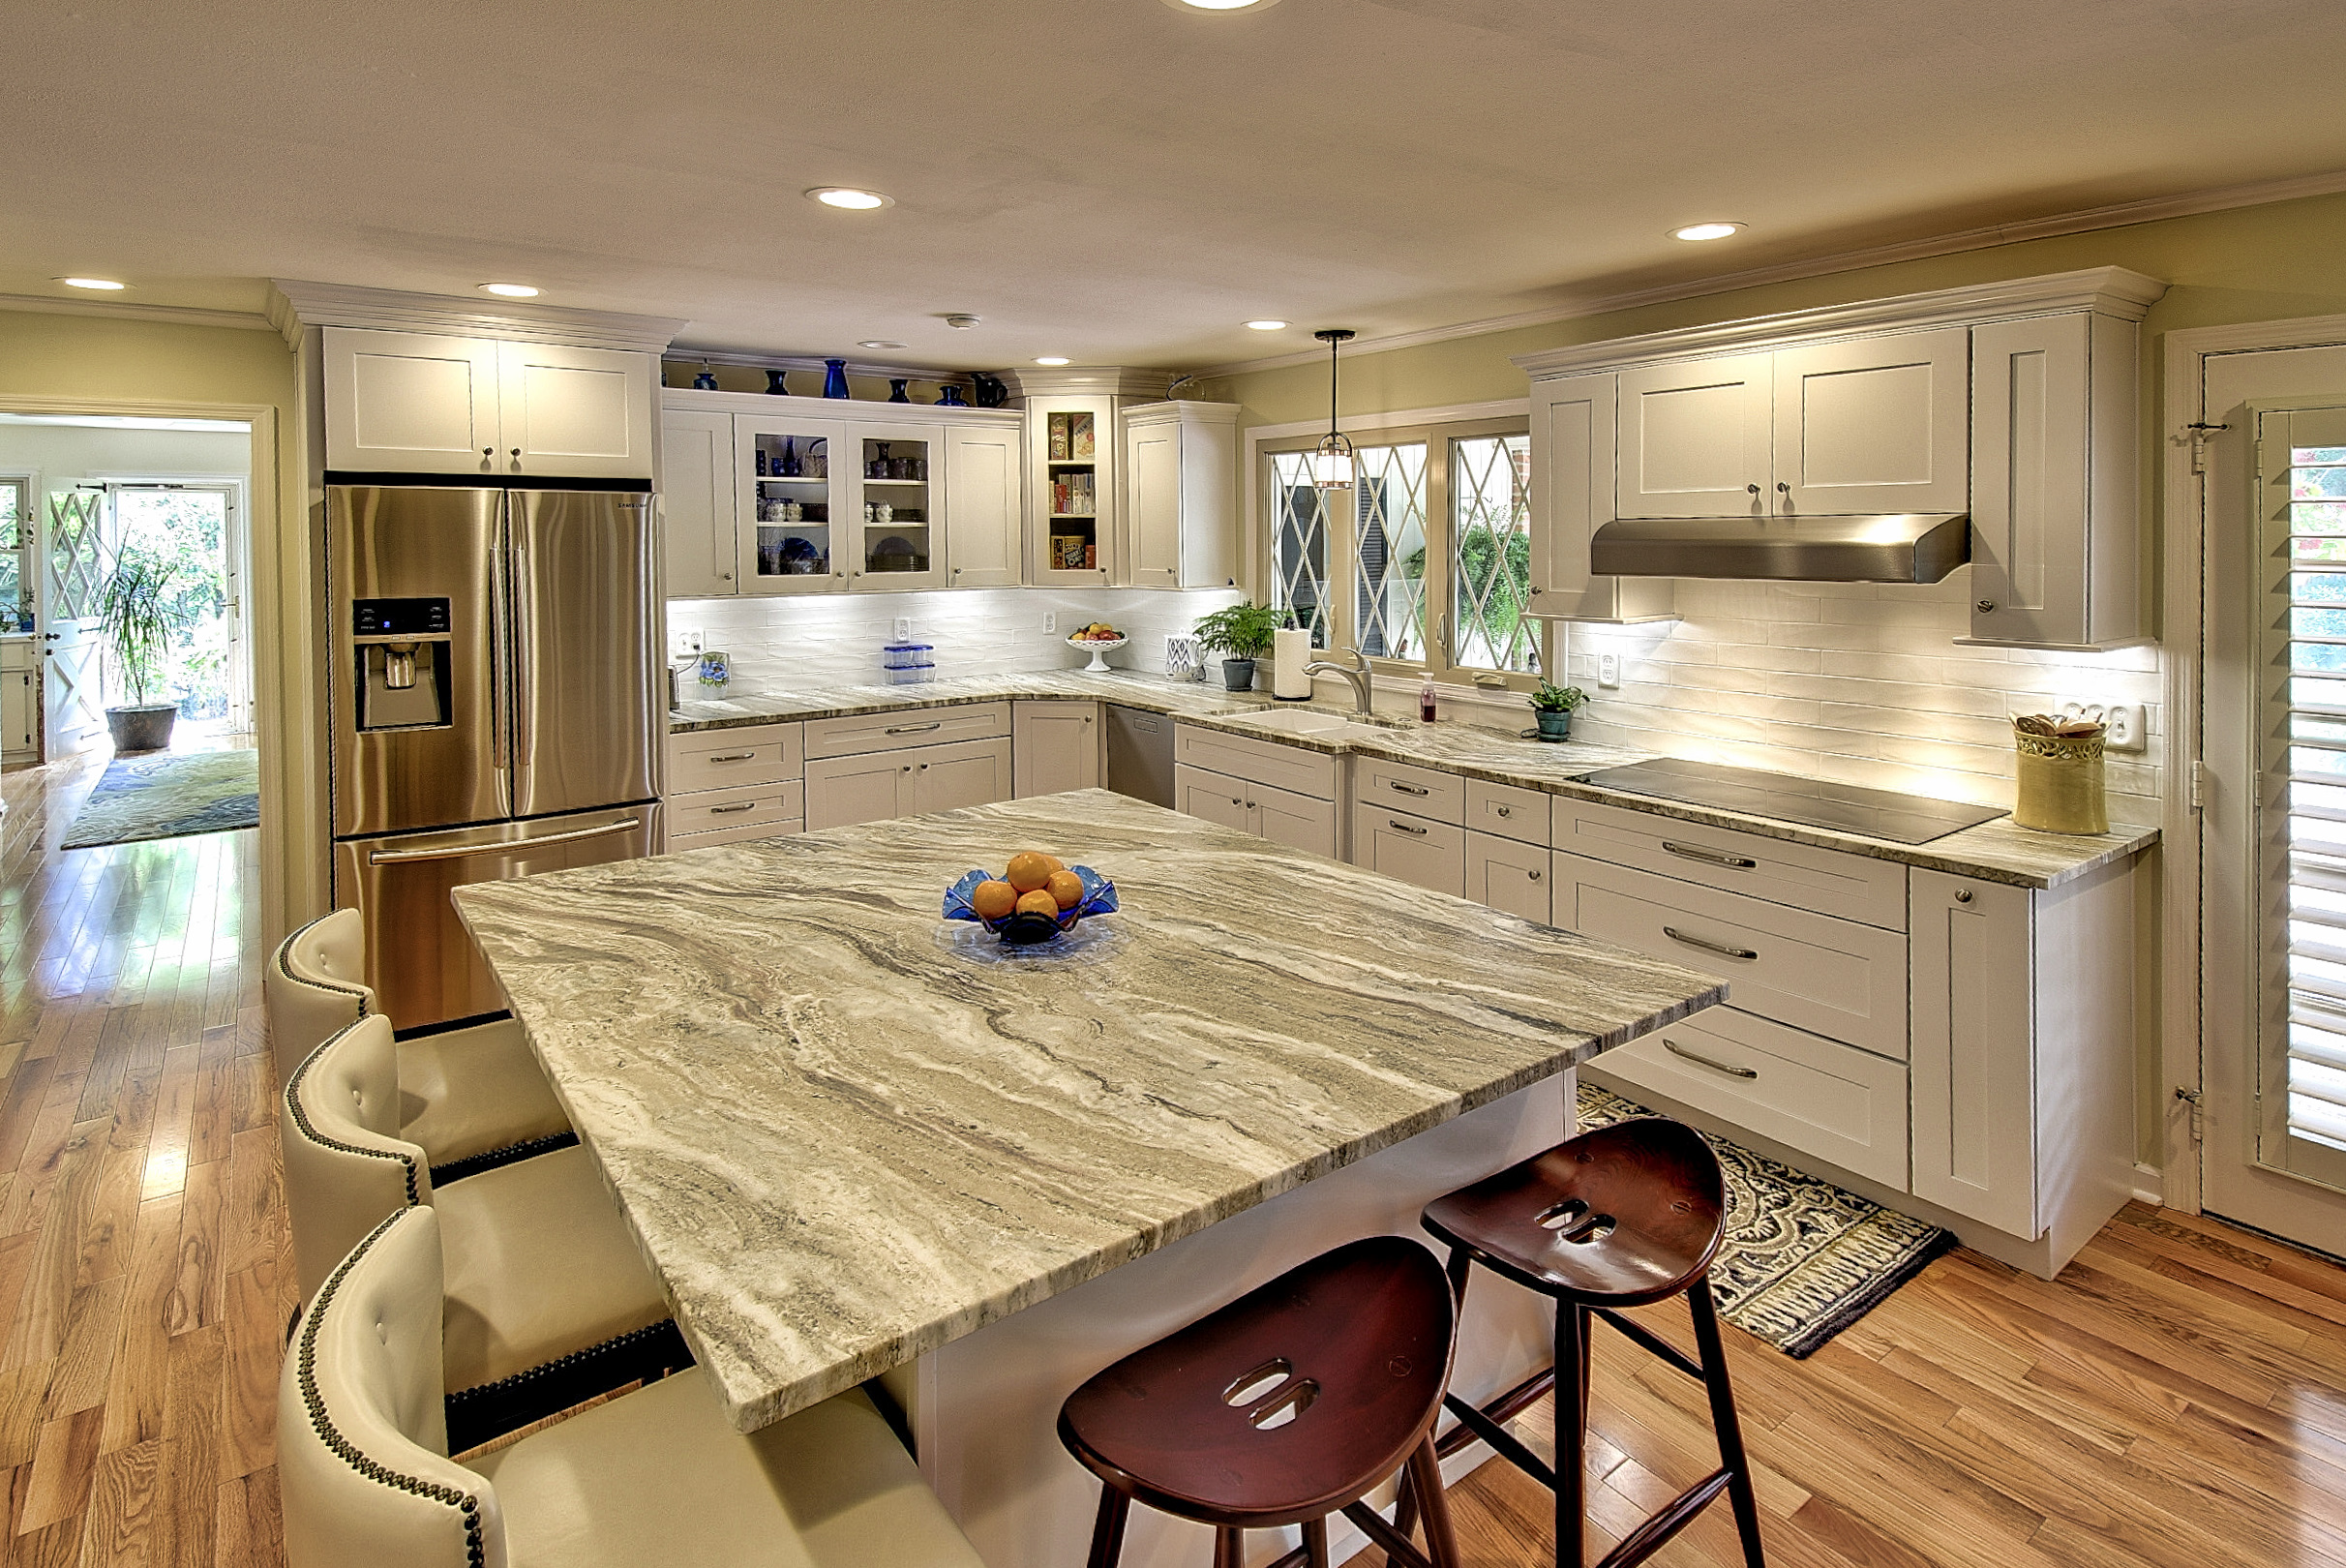 kitchen remodle how to protect hardwood floors in johnson city cabinet retailer kitchens by design remodel tn